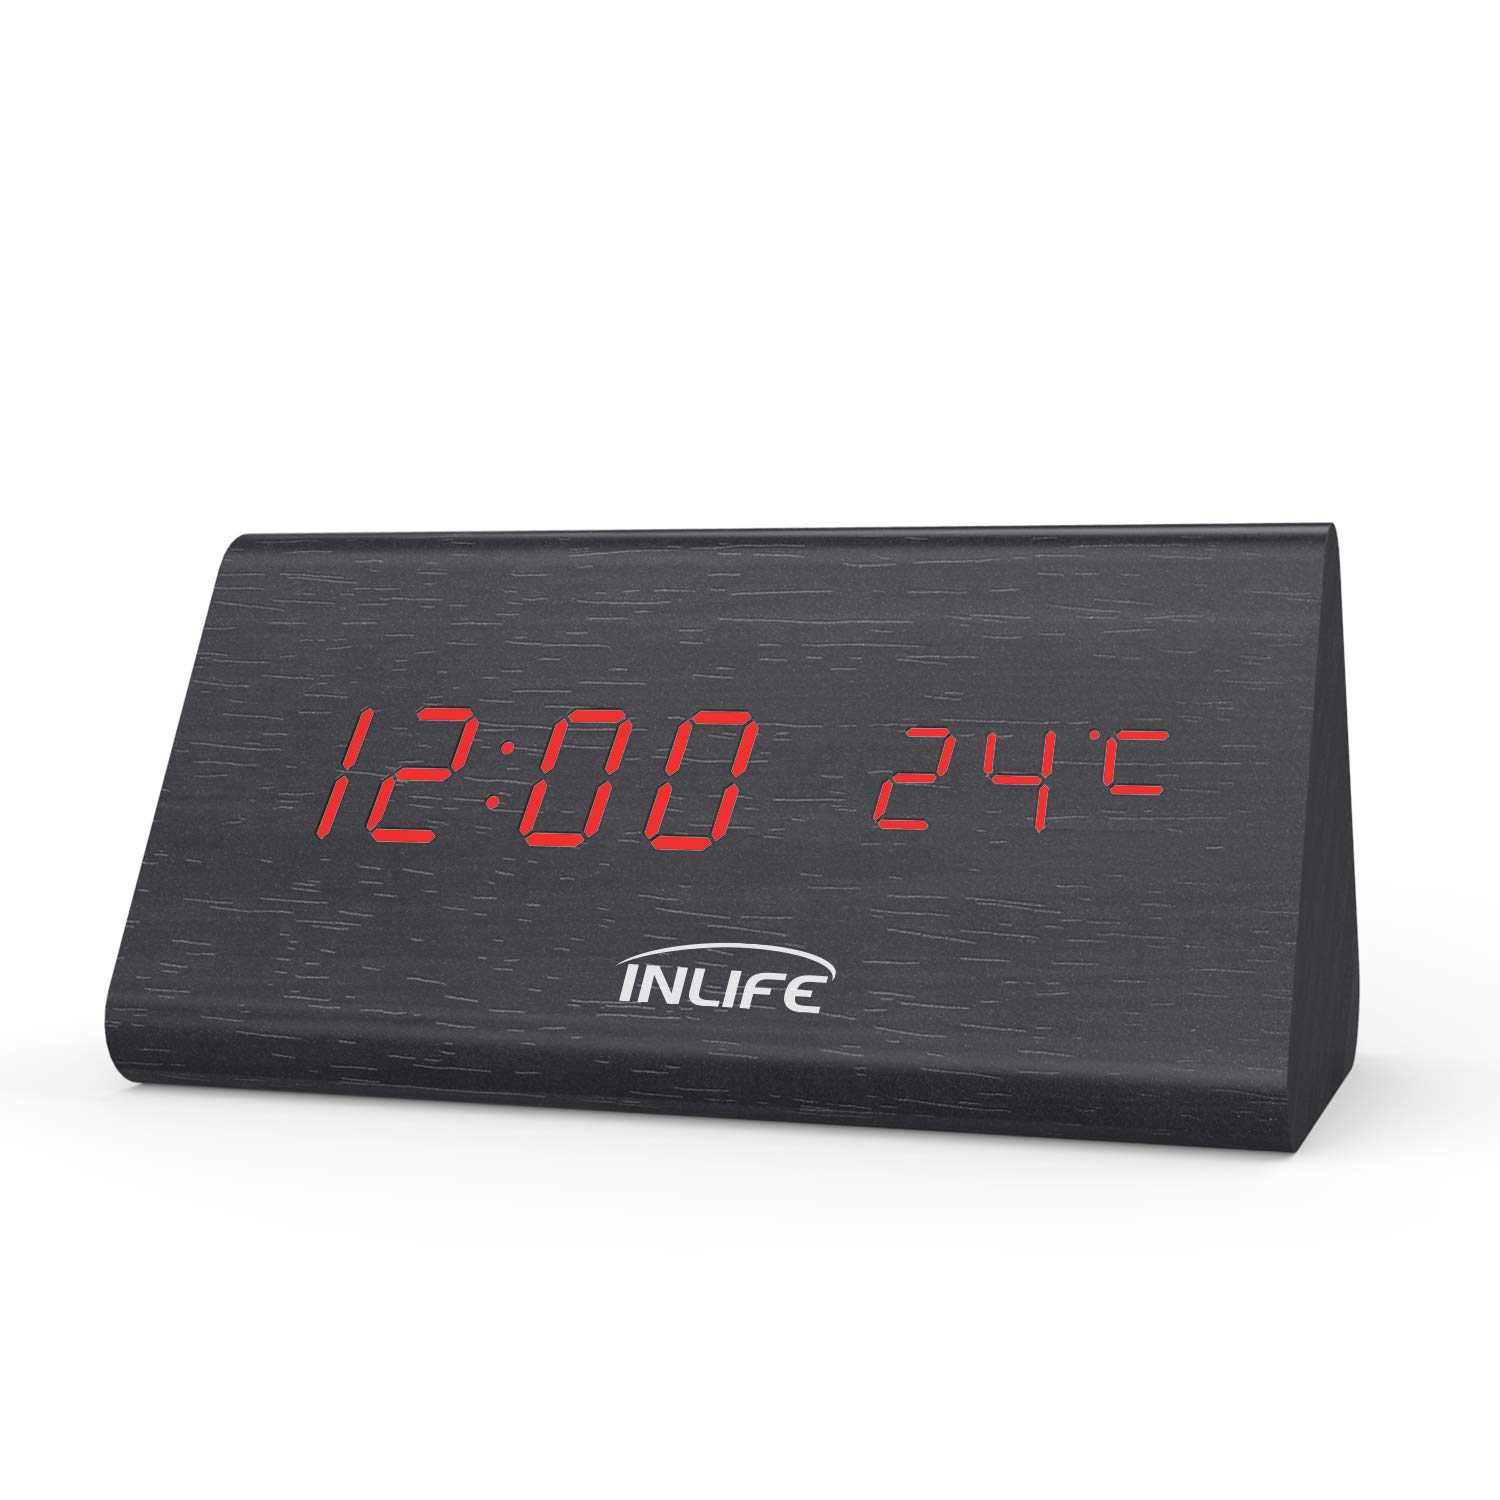 INLIFE Wooden Alarm Clock Digital LED Desk Clock with Date Temperatrue Display, Touch and Voice Control, Dimmer, 3 Alarms, Dual Power